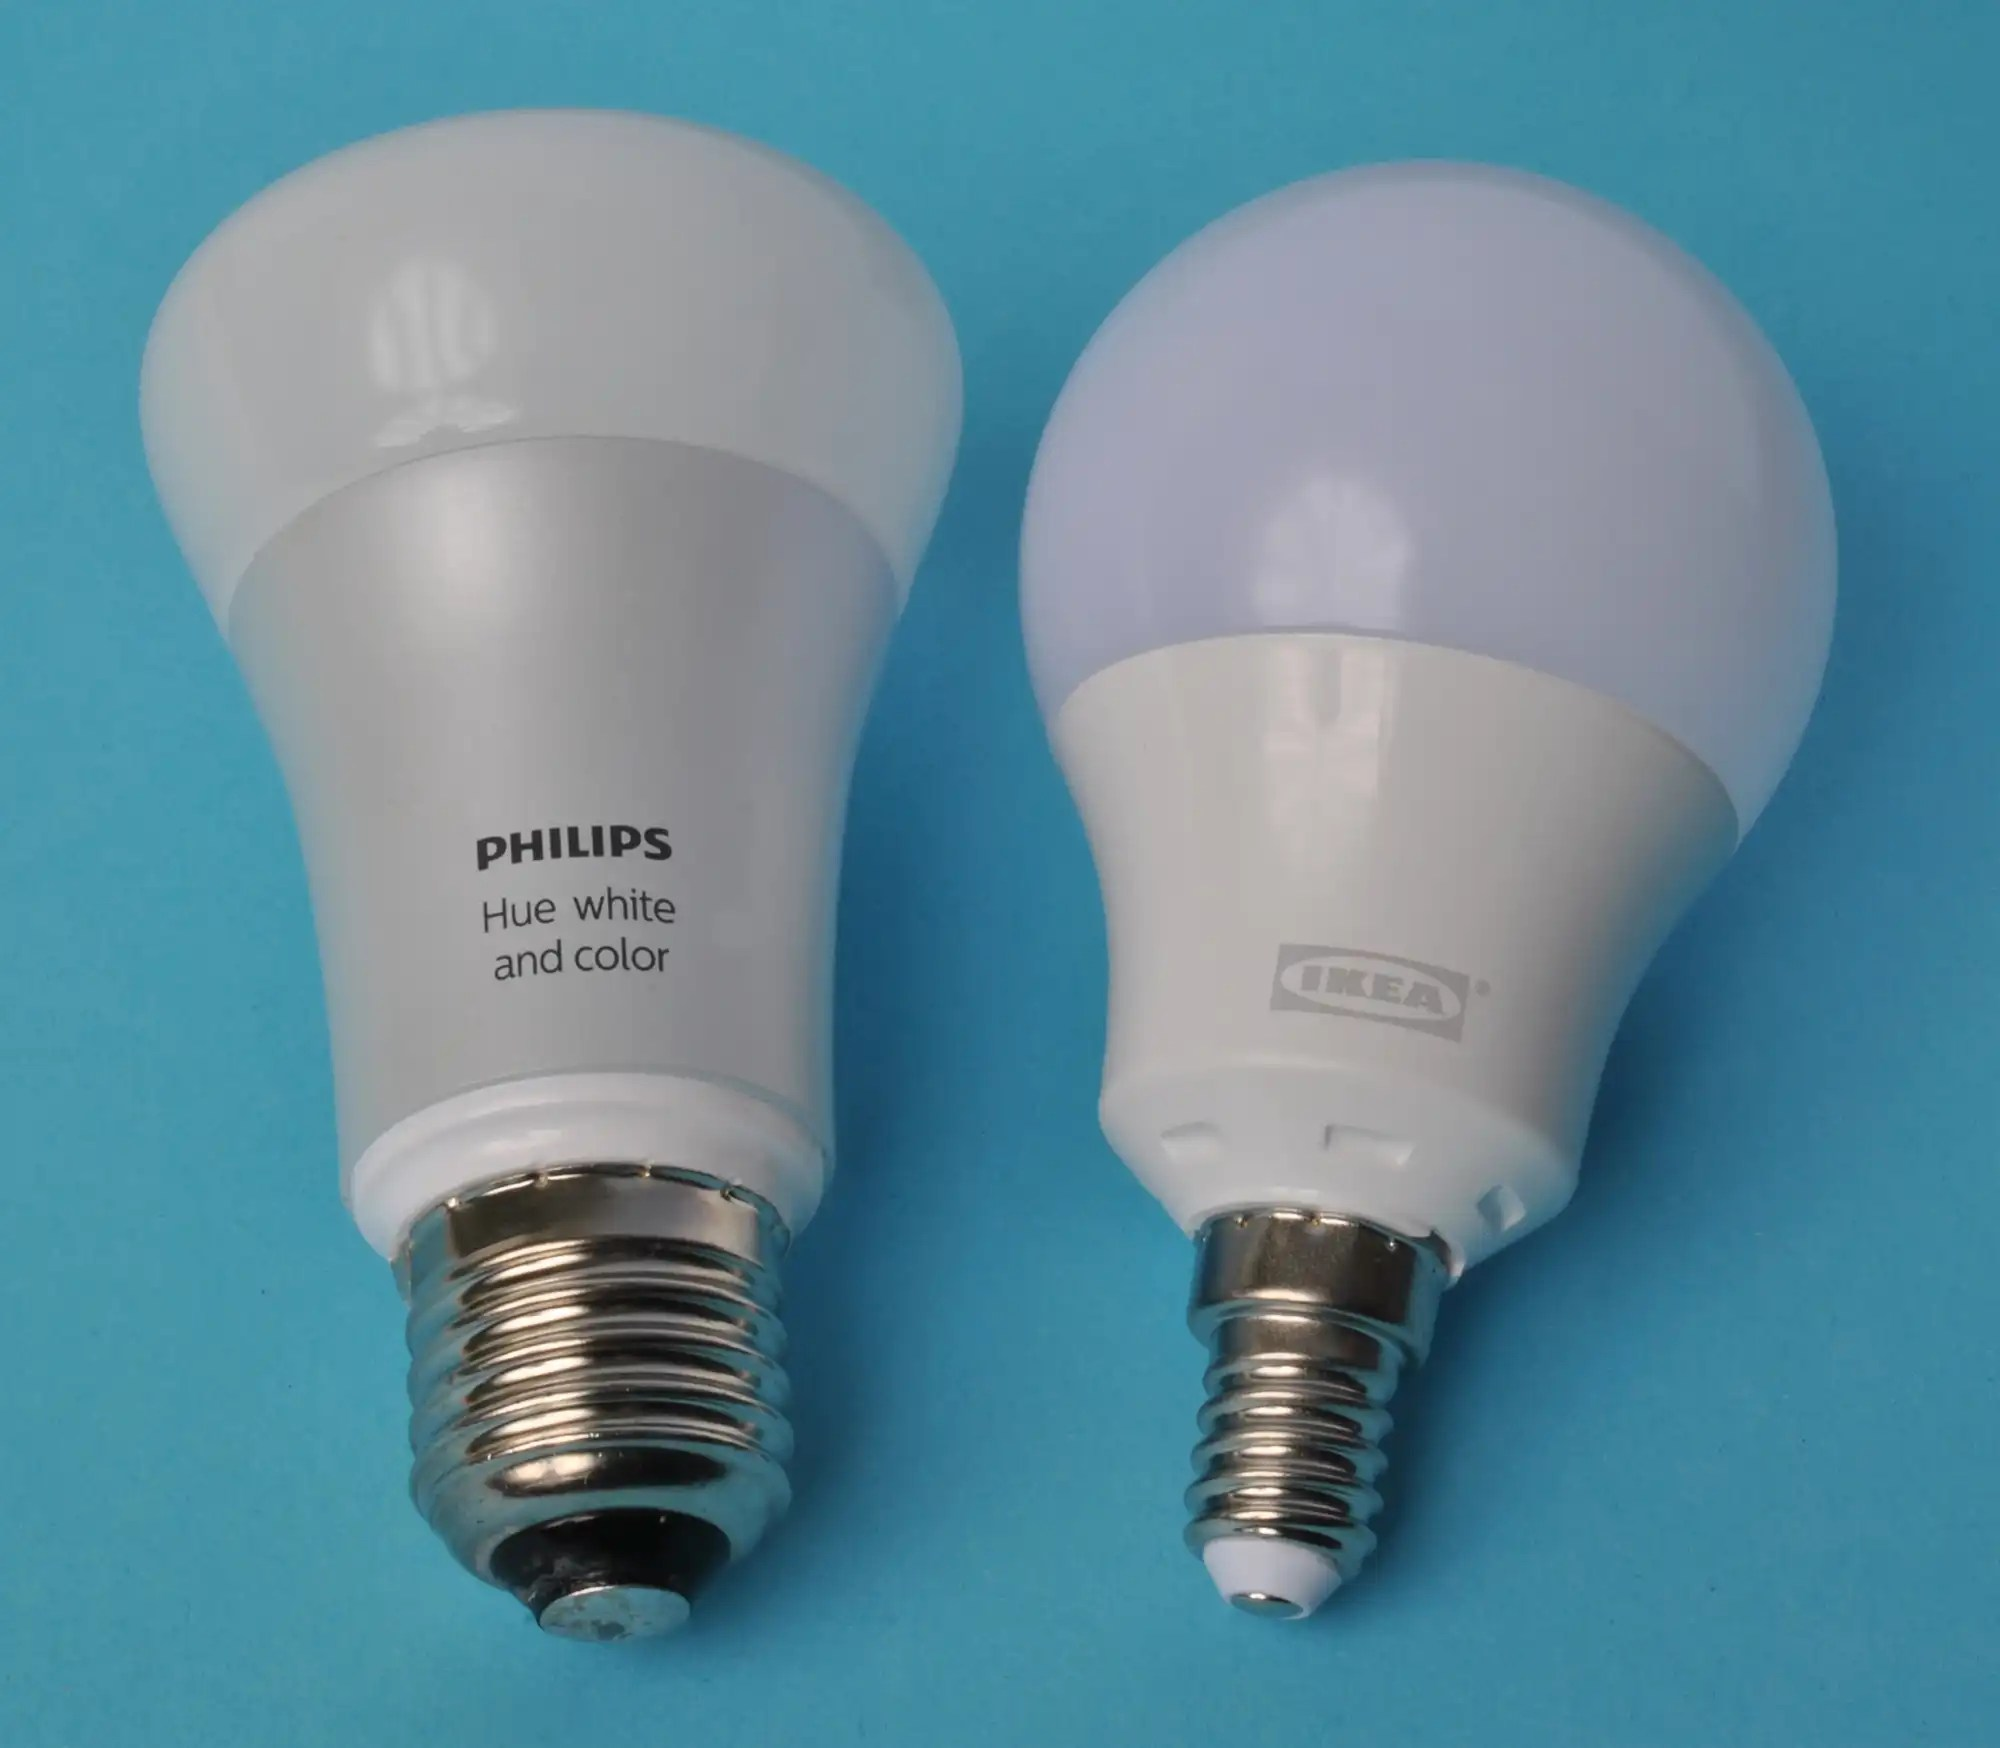 Philips Led Lampen Gu10 Das Steckt In Ikea Trådfri Make